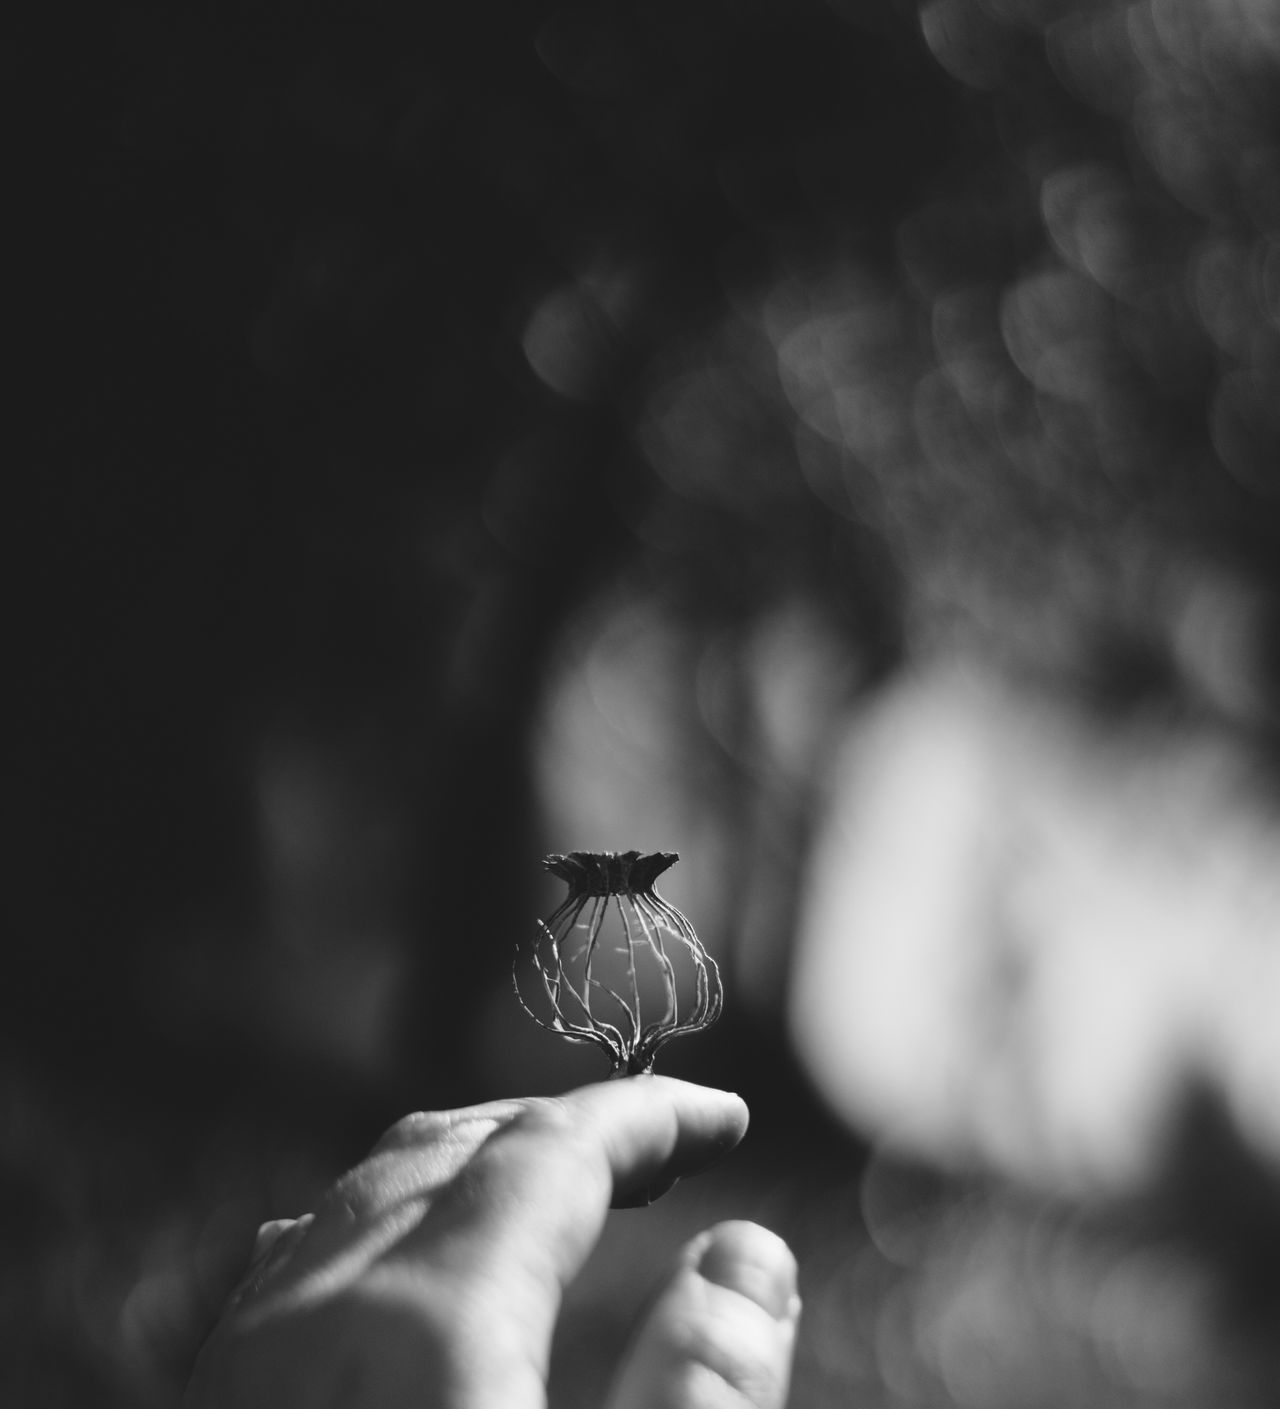 Human Hand One Animal Animal Themes Human Body Part Animals In The Wild Light And Shadow Black & White Seedpod Decay Poppy Pod One Person Real People Human Finger Unrecognizable Person Close-up Holding Focus On Foreground Animal Wildlife Day Outdoors Mosquito Nature